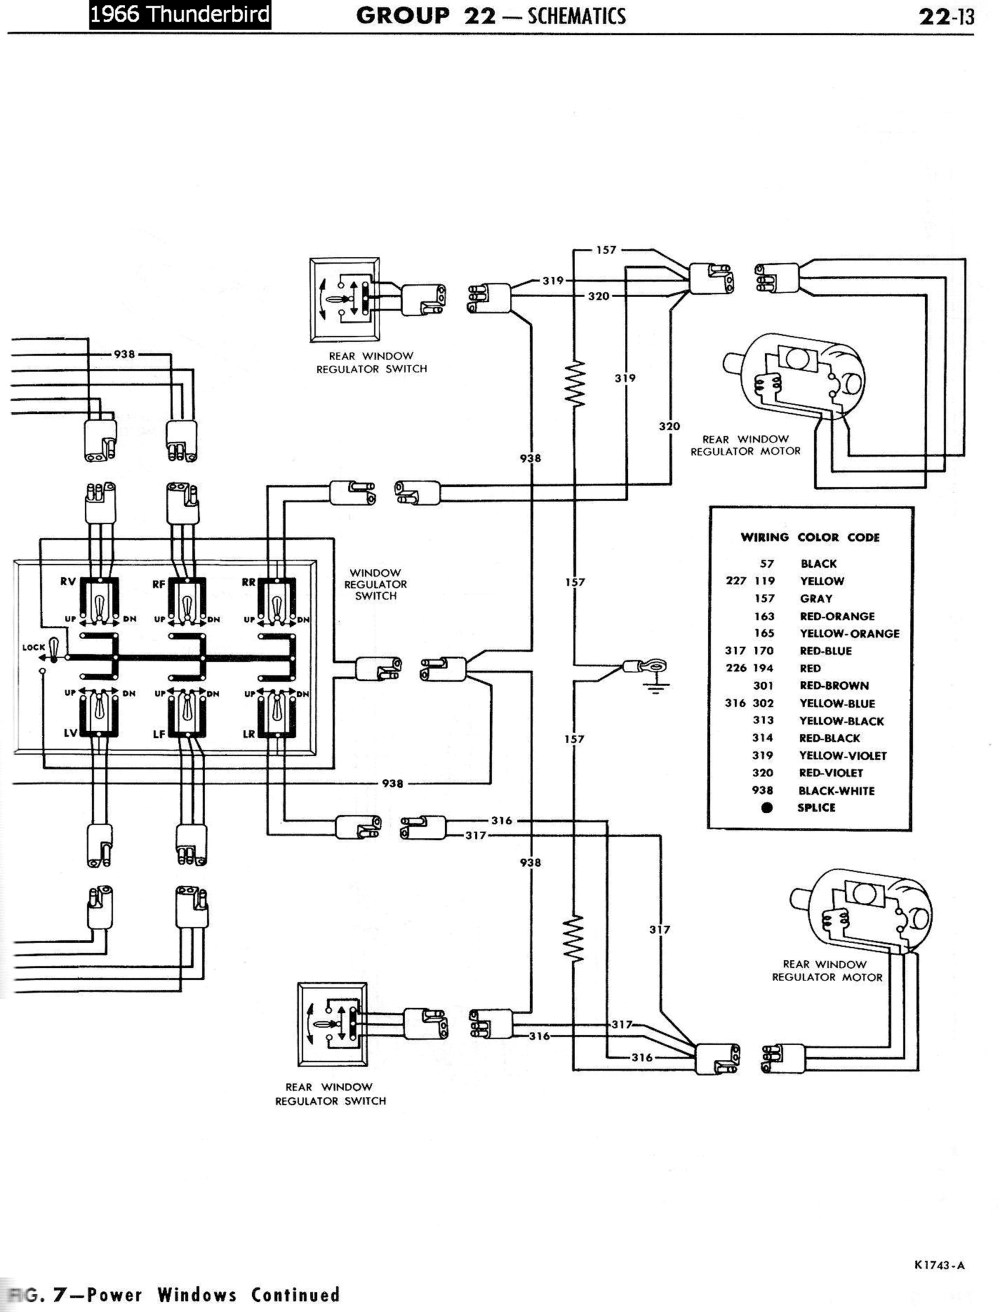 medium resolution of 1958 68 ford electrical schematics rh squarebirds org 70 thunderbird 66 thunderbird